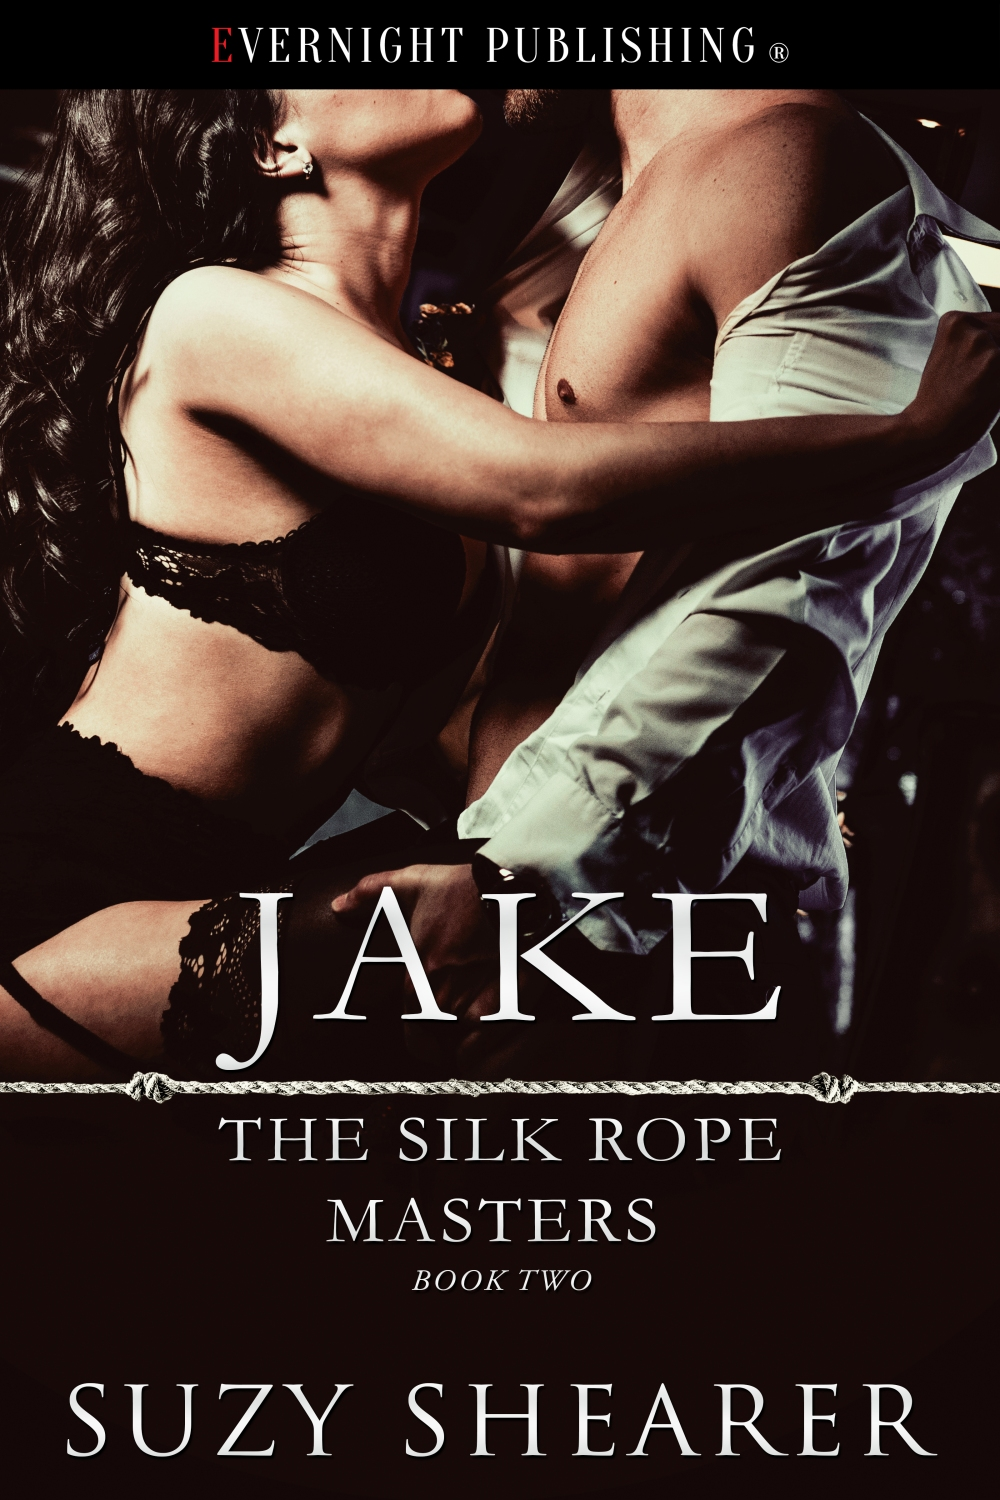 jake-evernightpublishing-2018-eBook-complete.jpg